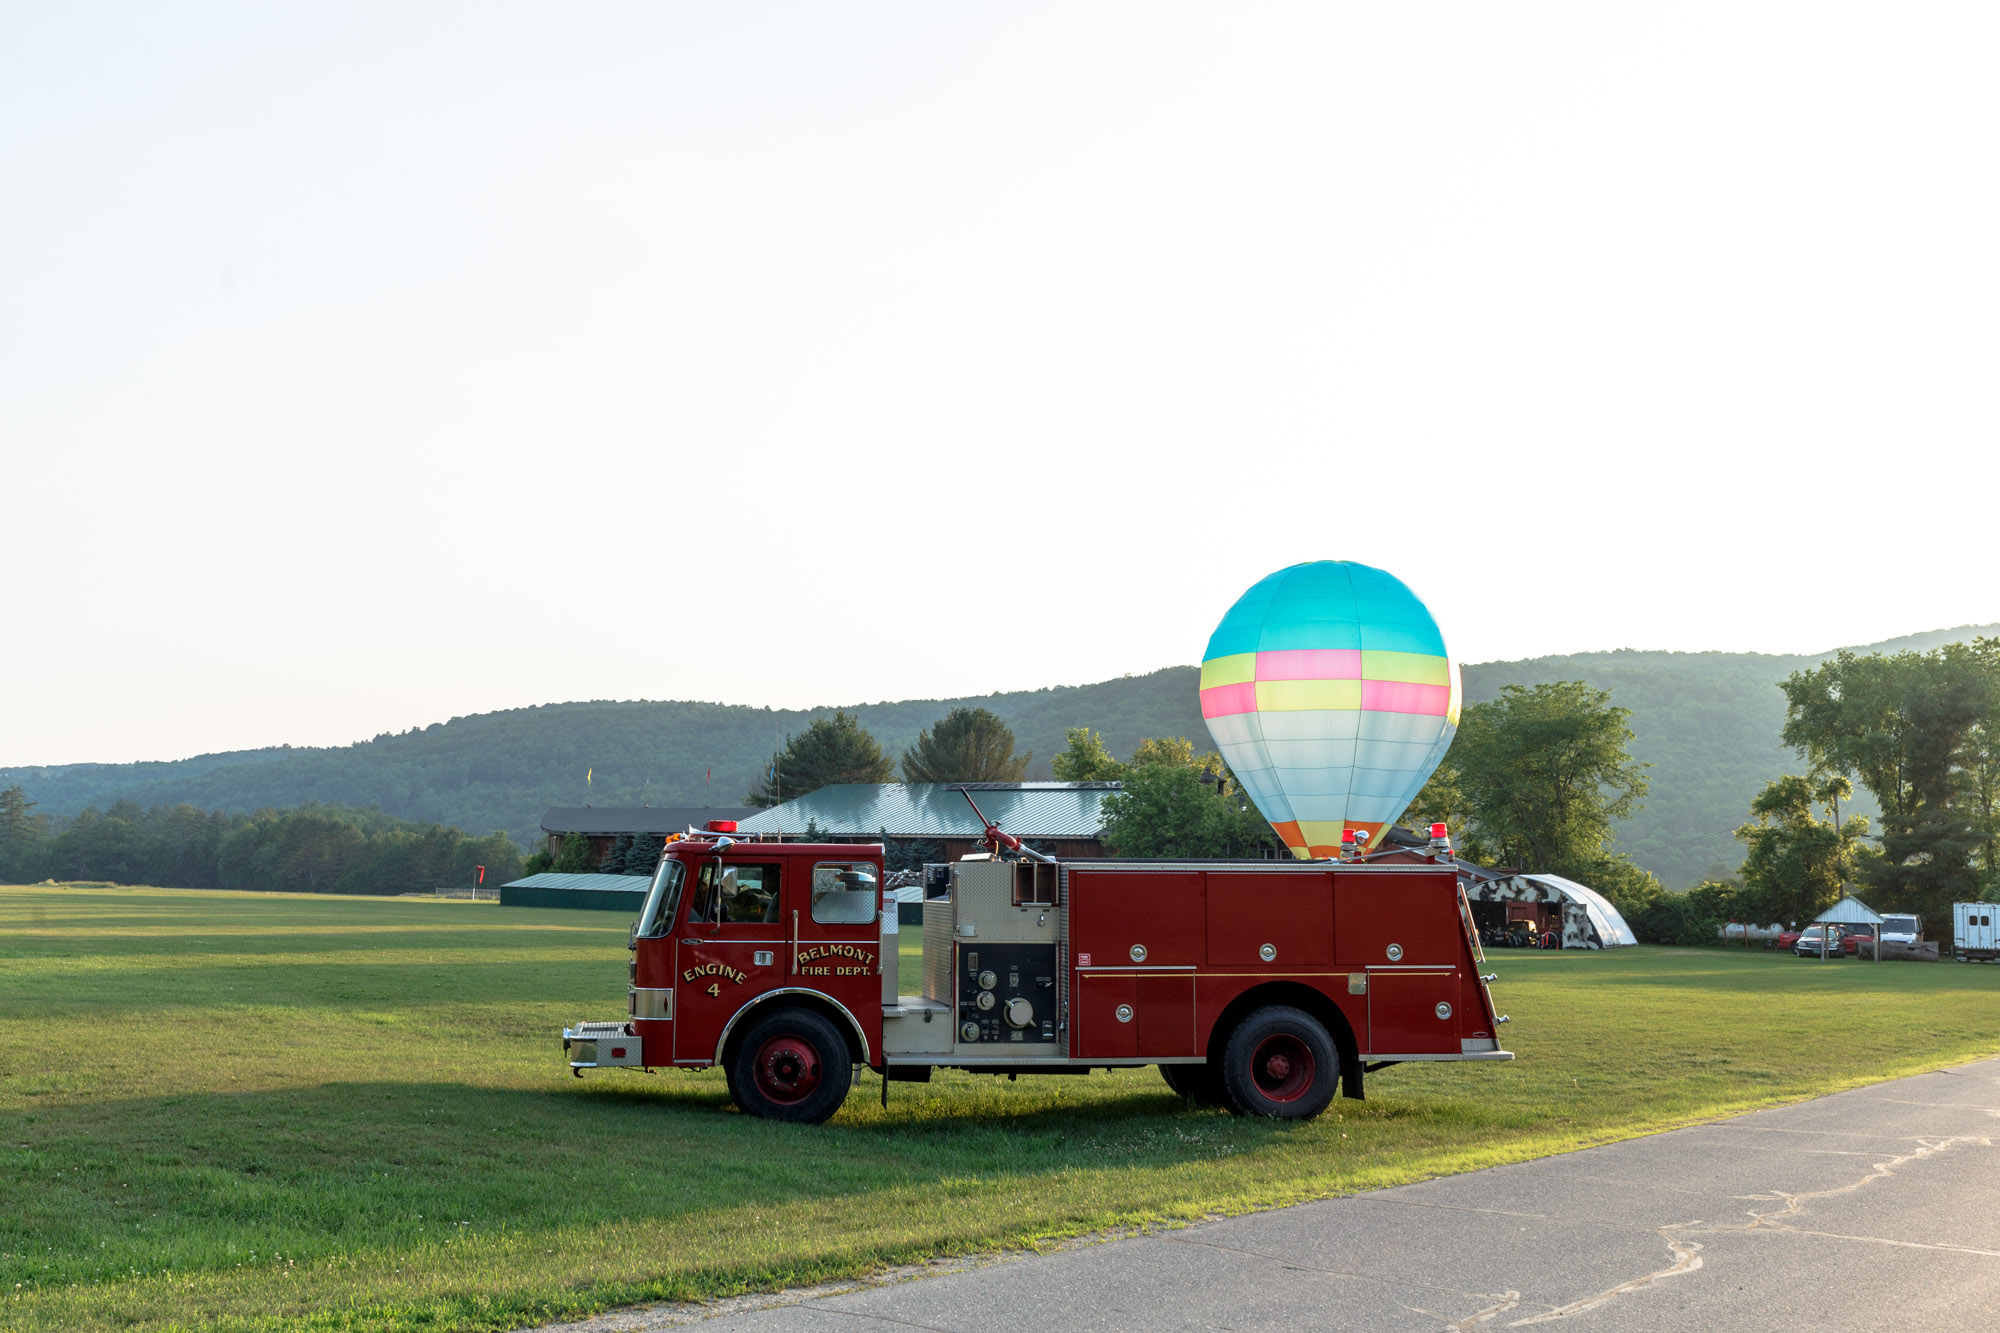 Fire Truck with Balloon